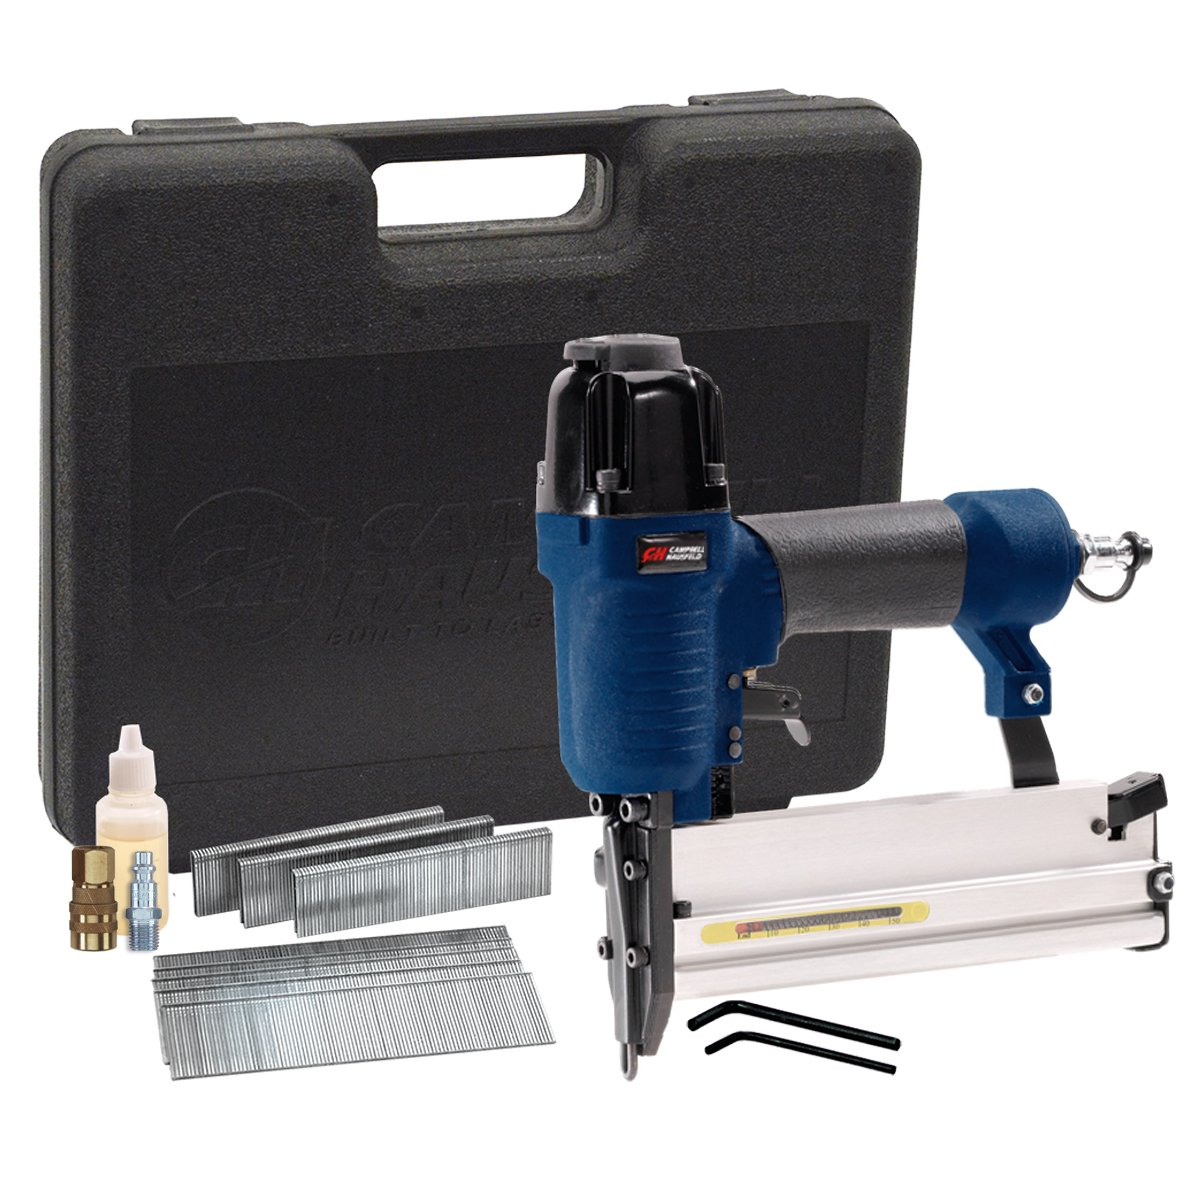 Clavadora Neumatica : Brad Nailer and Air Stapler, 2-in-1,..